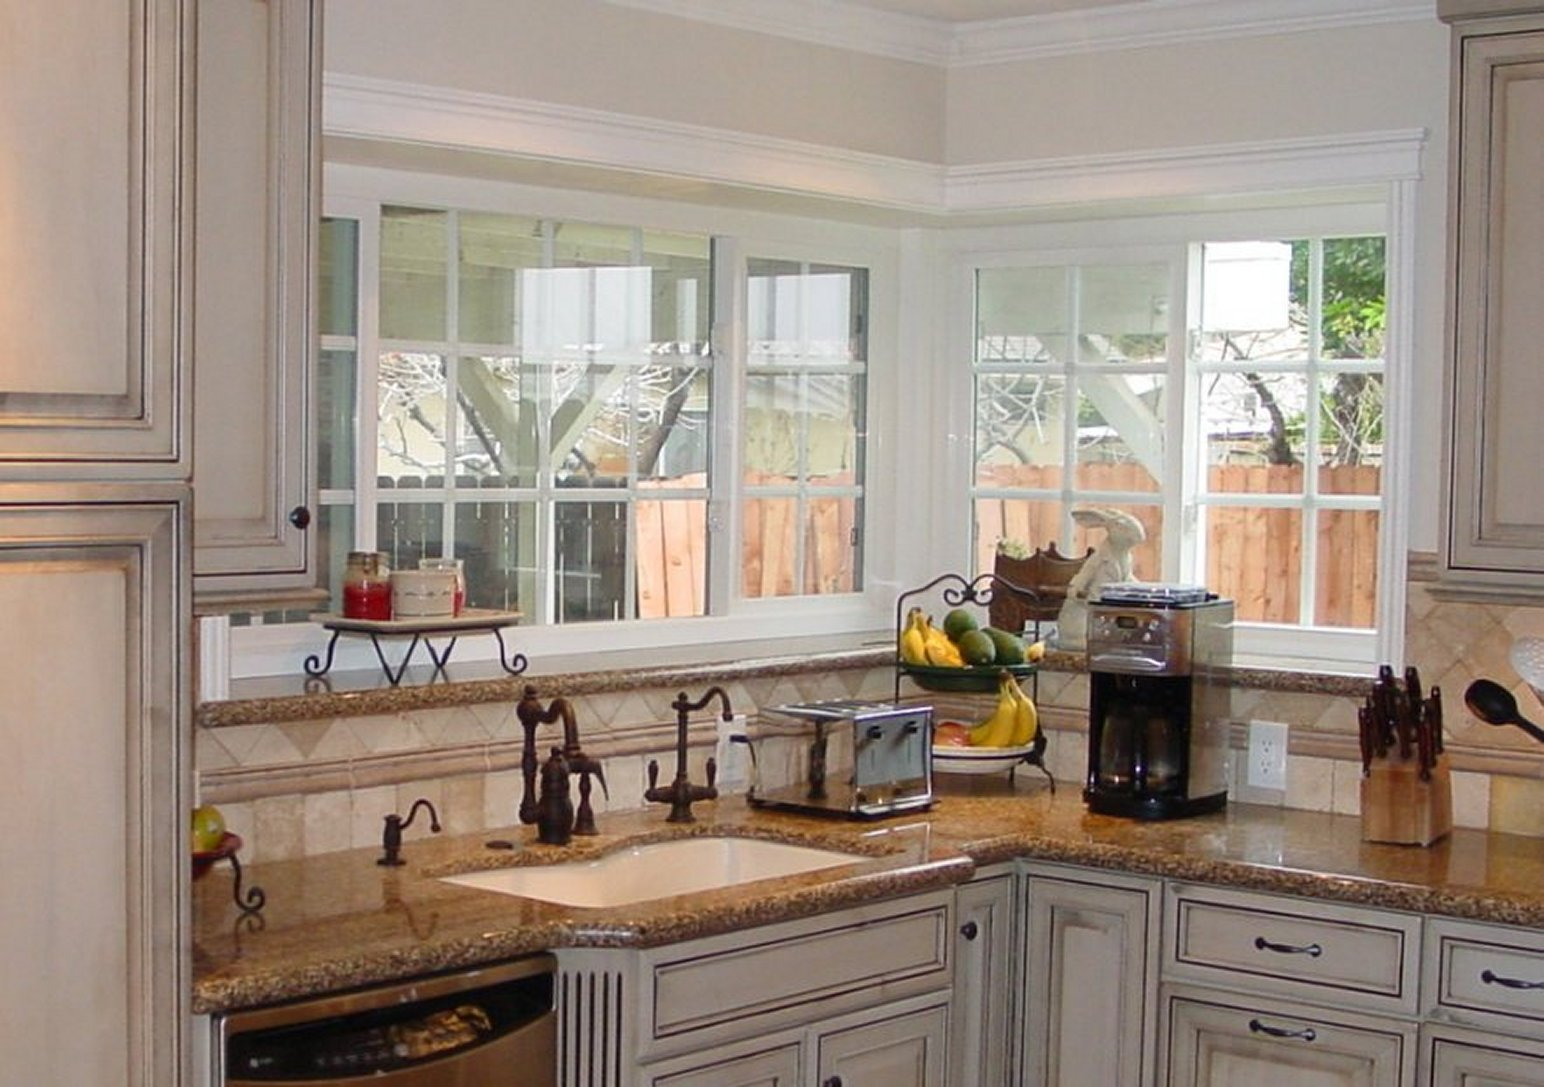 Green house windows for kitchen for fresh and natural for House kitchen images